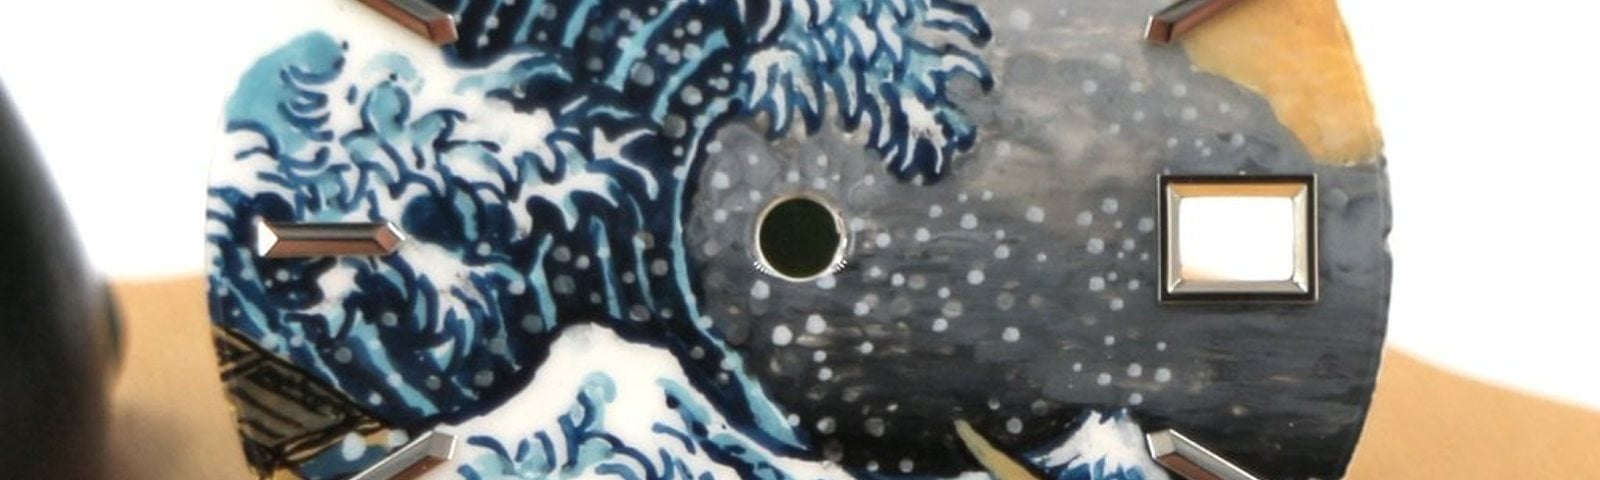 HALL OF FAME: The Owners of Hand Painted Great Wave off Kanagawa Dial